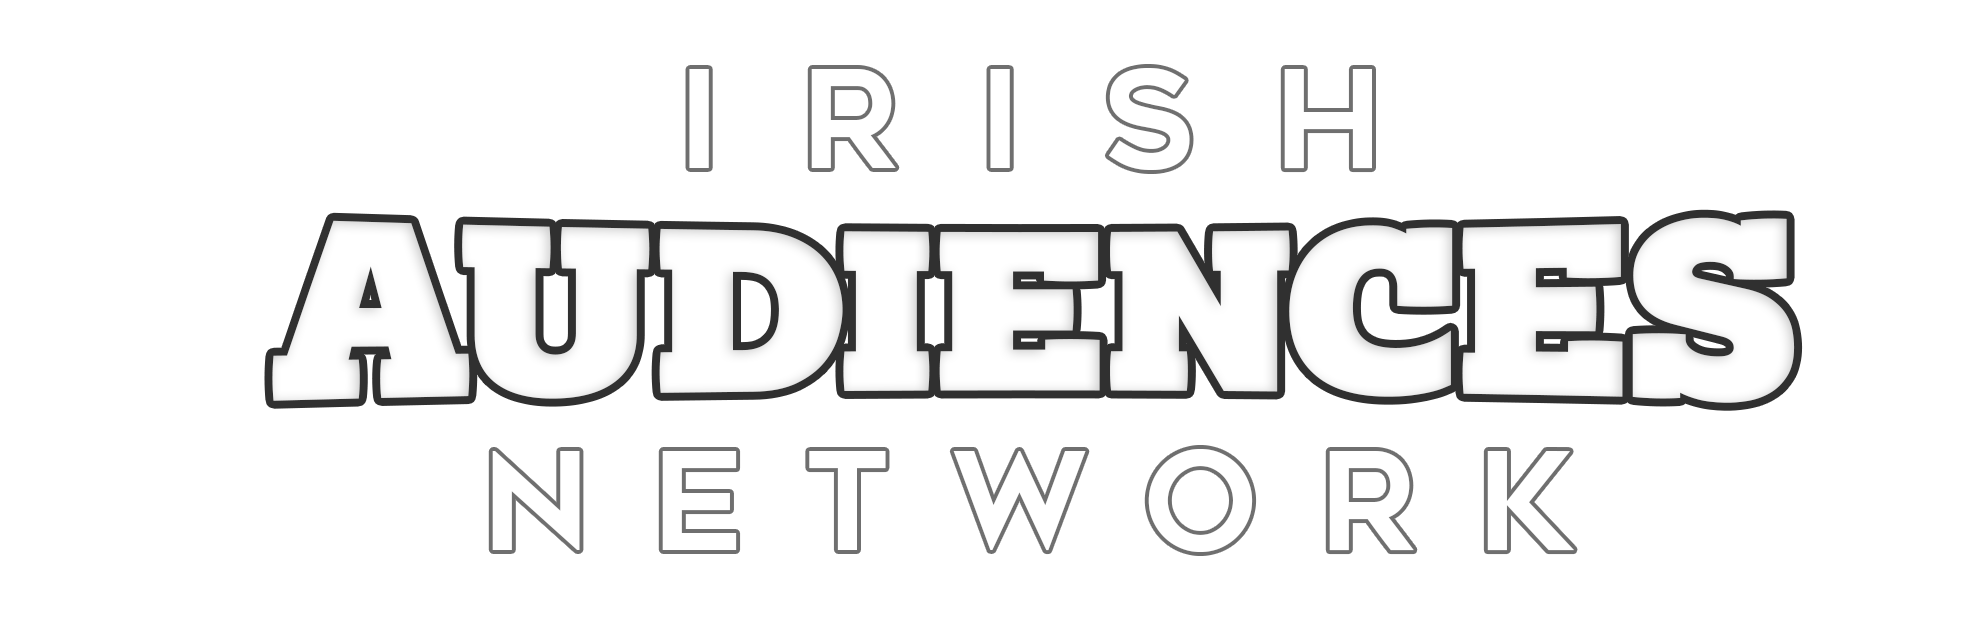 Irish Audiences Network